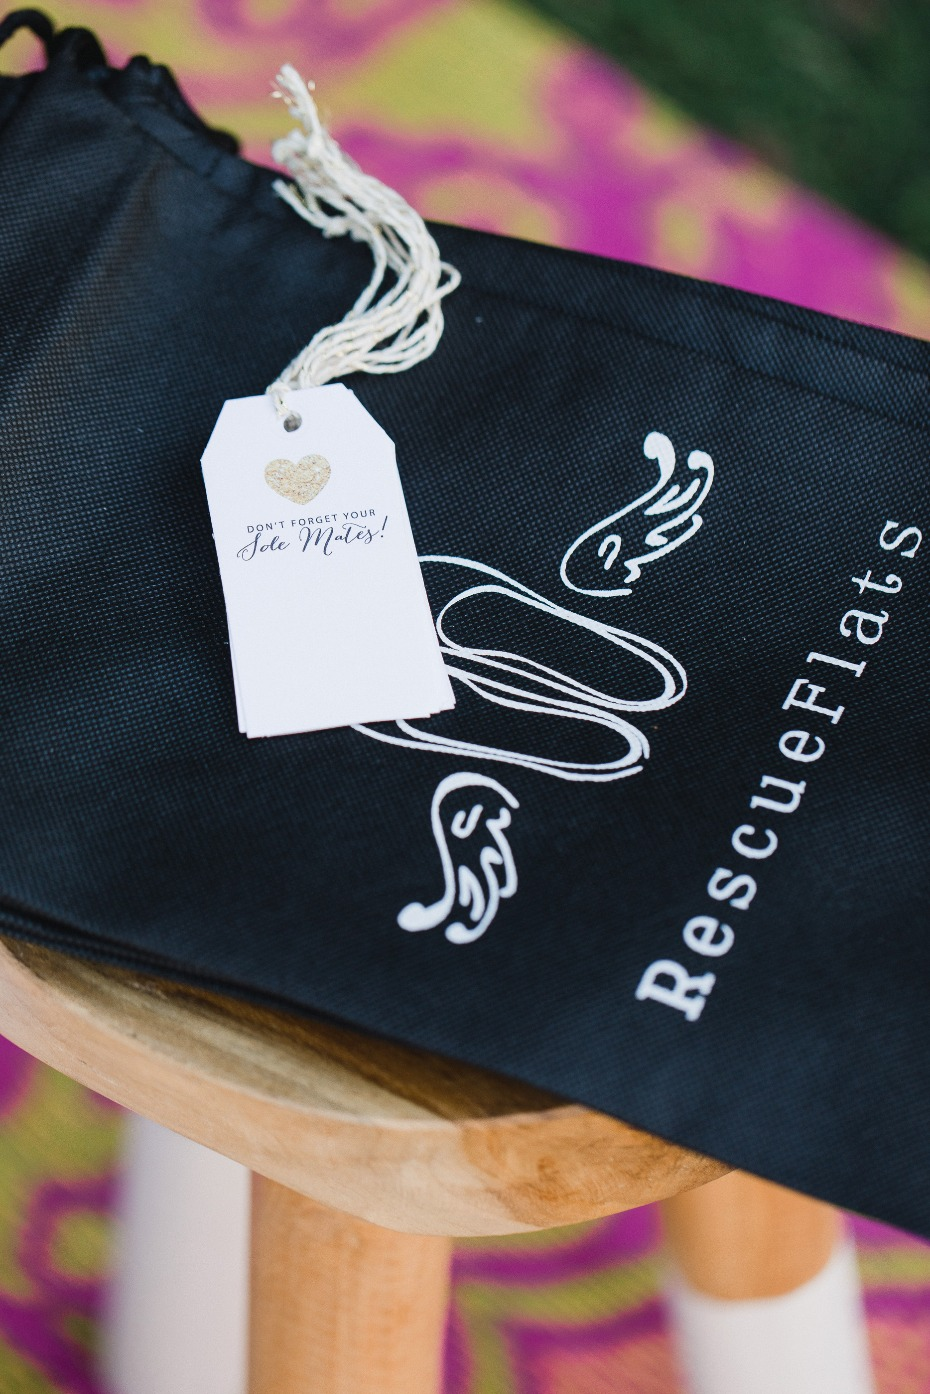 don't forget your sole mates shoe bags for your guests heels